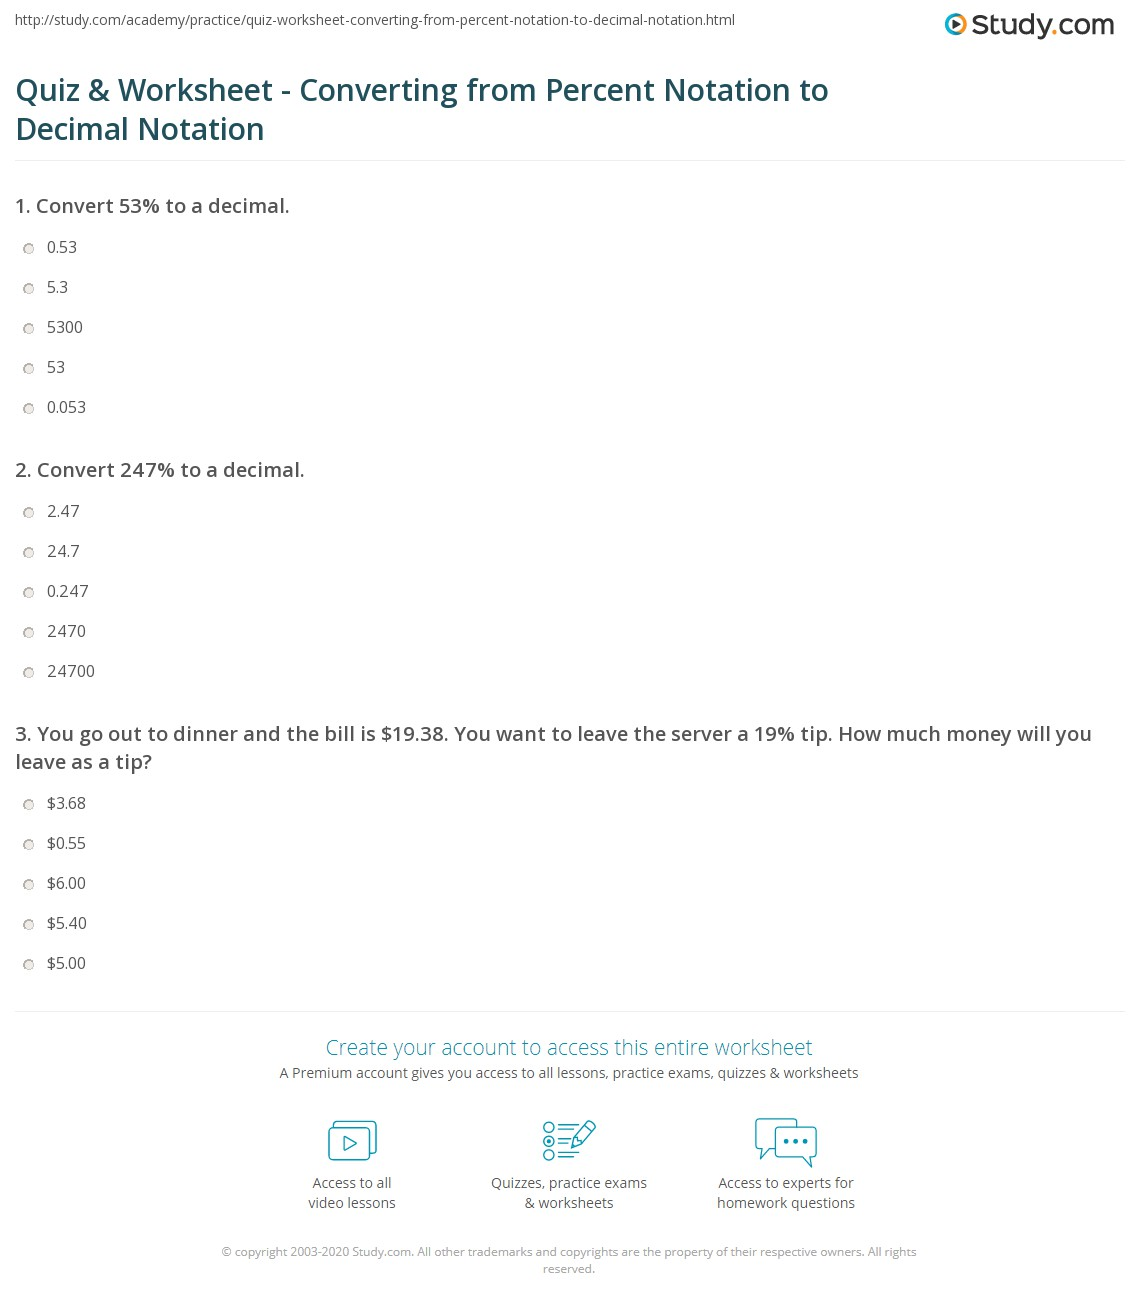 quiz worksheet converting from percent notation to decimal notation. Black Bedroom Furniture Sets. Home Design Ideas